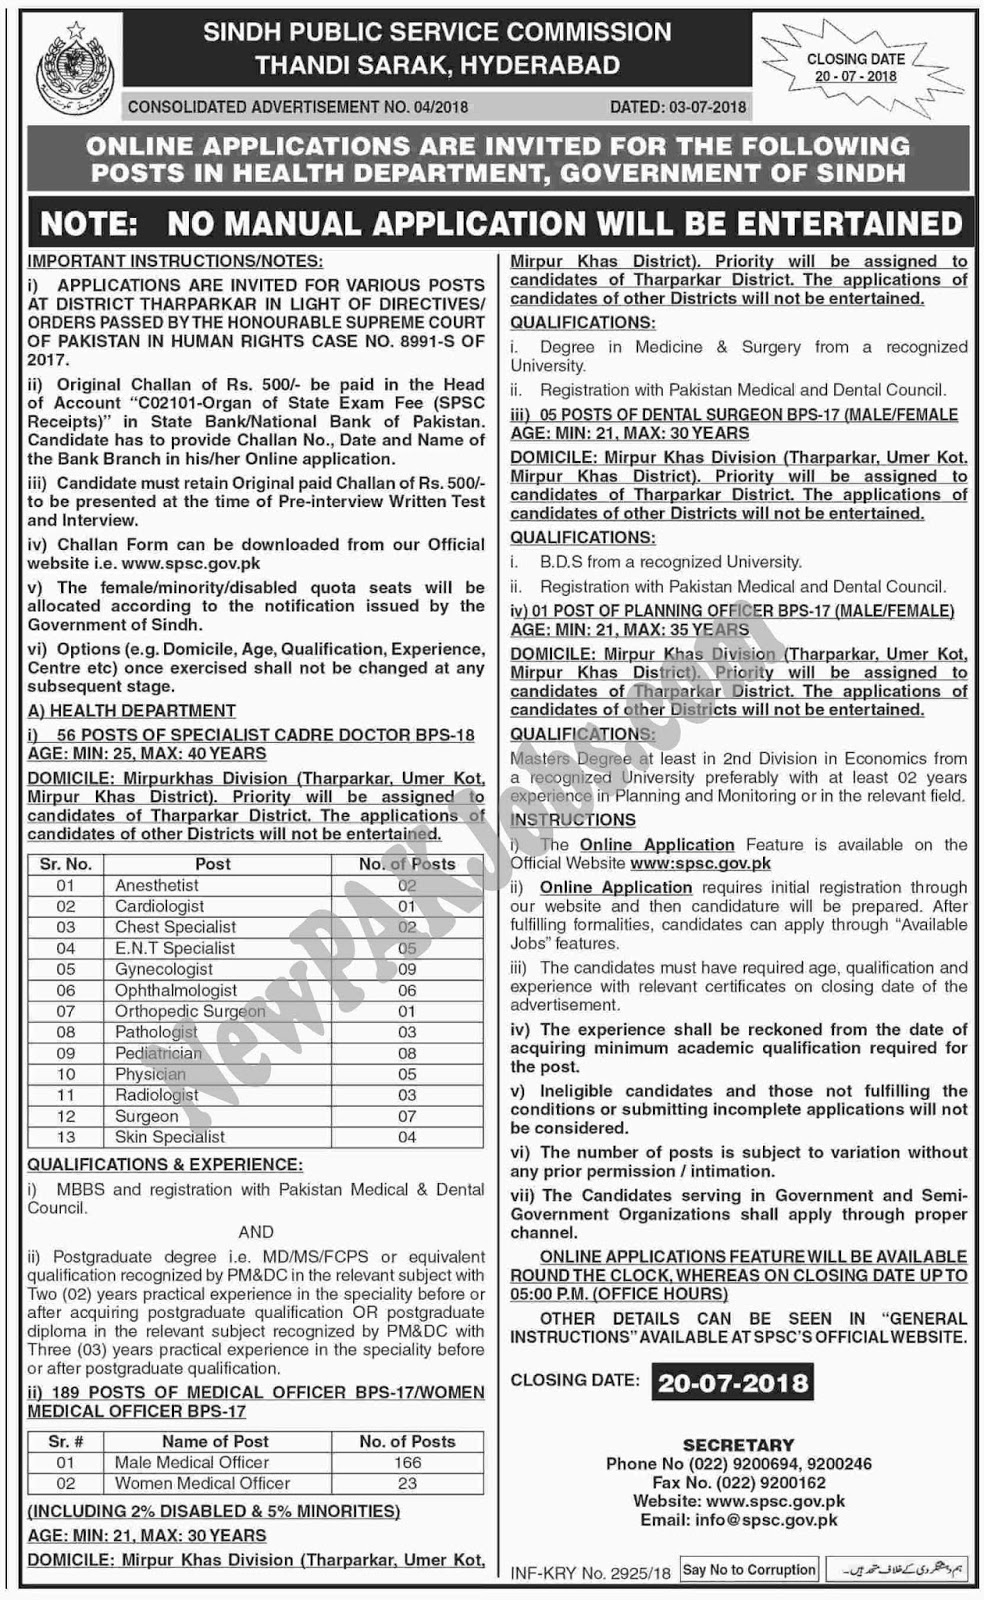 SPSC Jobs July 2018 Sindh Public Service Commission